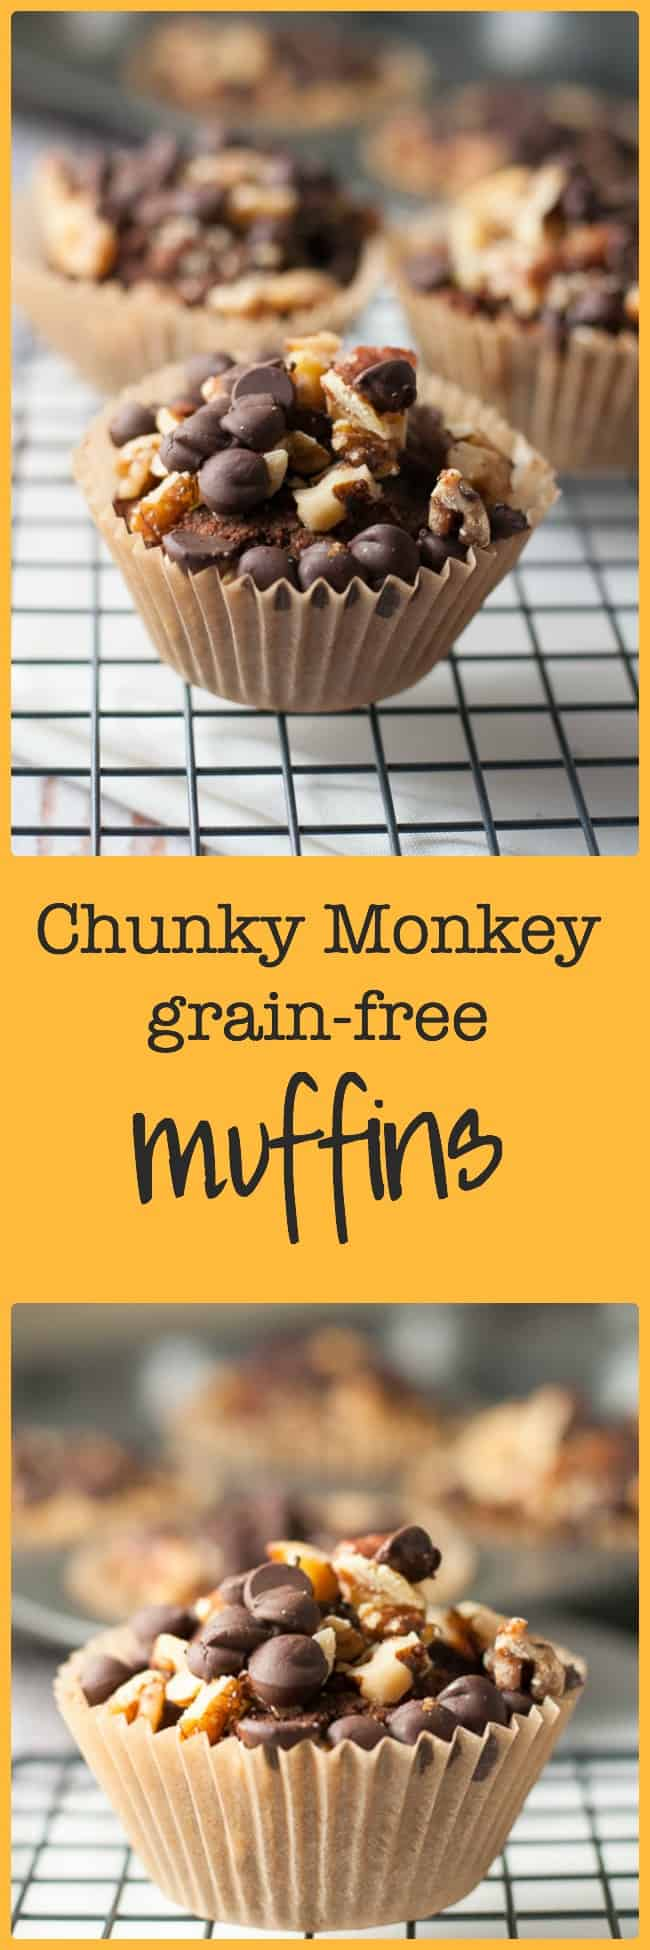 Chunky Monkey Grain-free Muffins. No grains, no dairy. Just a yummy muffin made with bananas, almond butter, dates and cocoa and topped off with walnuts and chocolate chips. All our favourite flavours together in one healthy muffin.